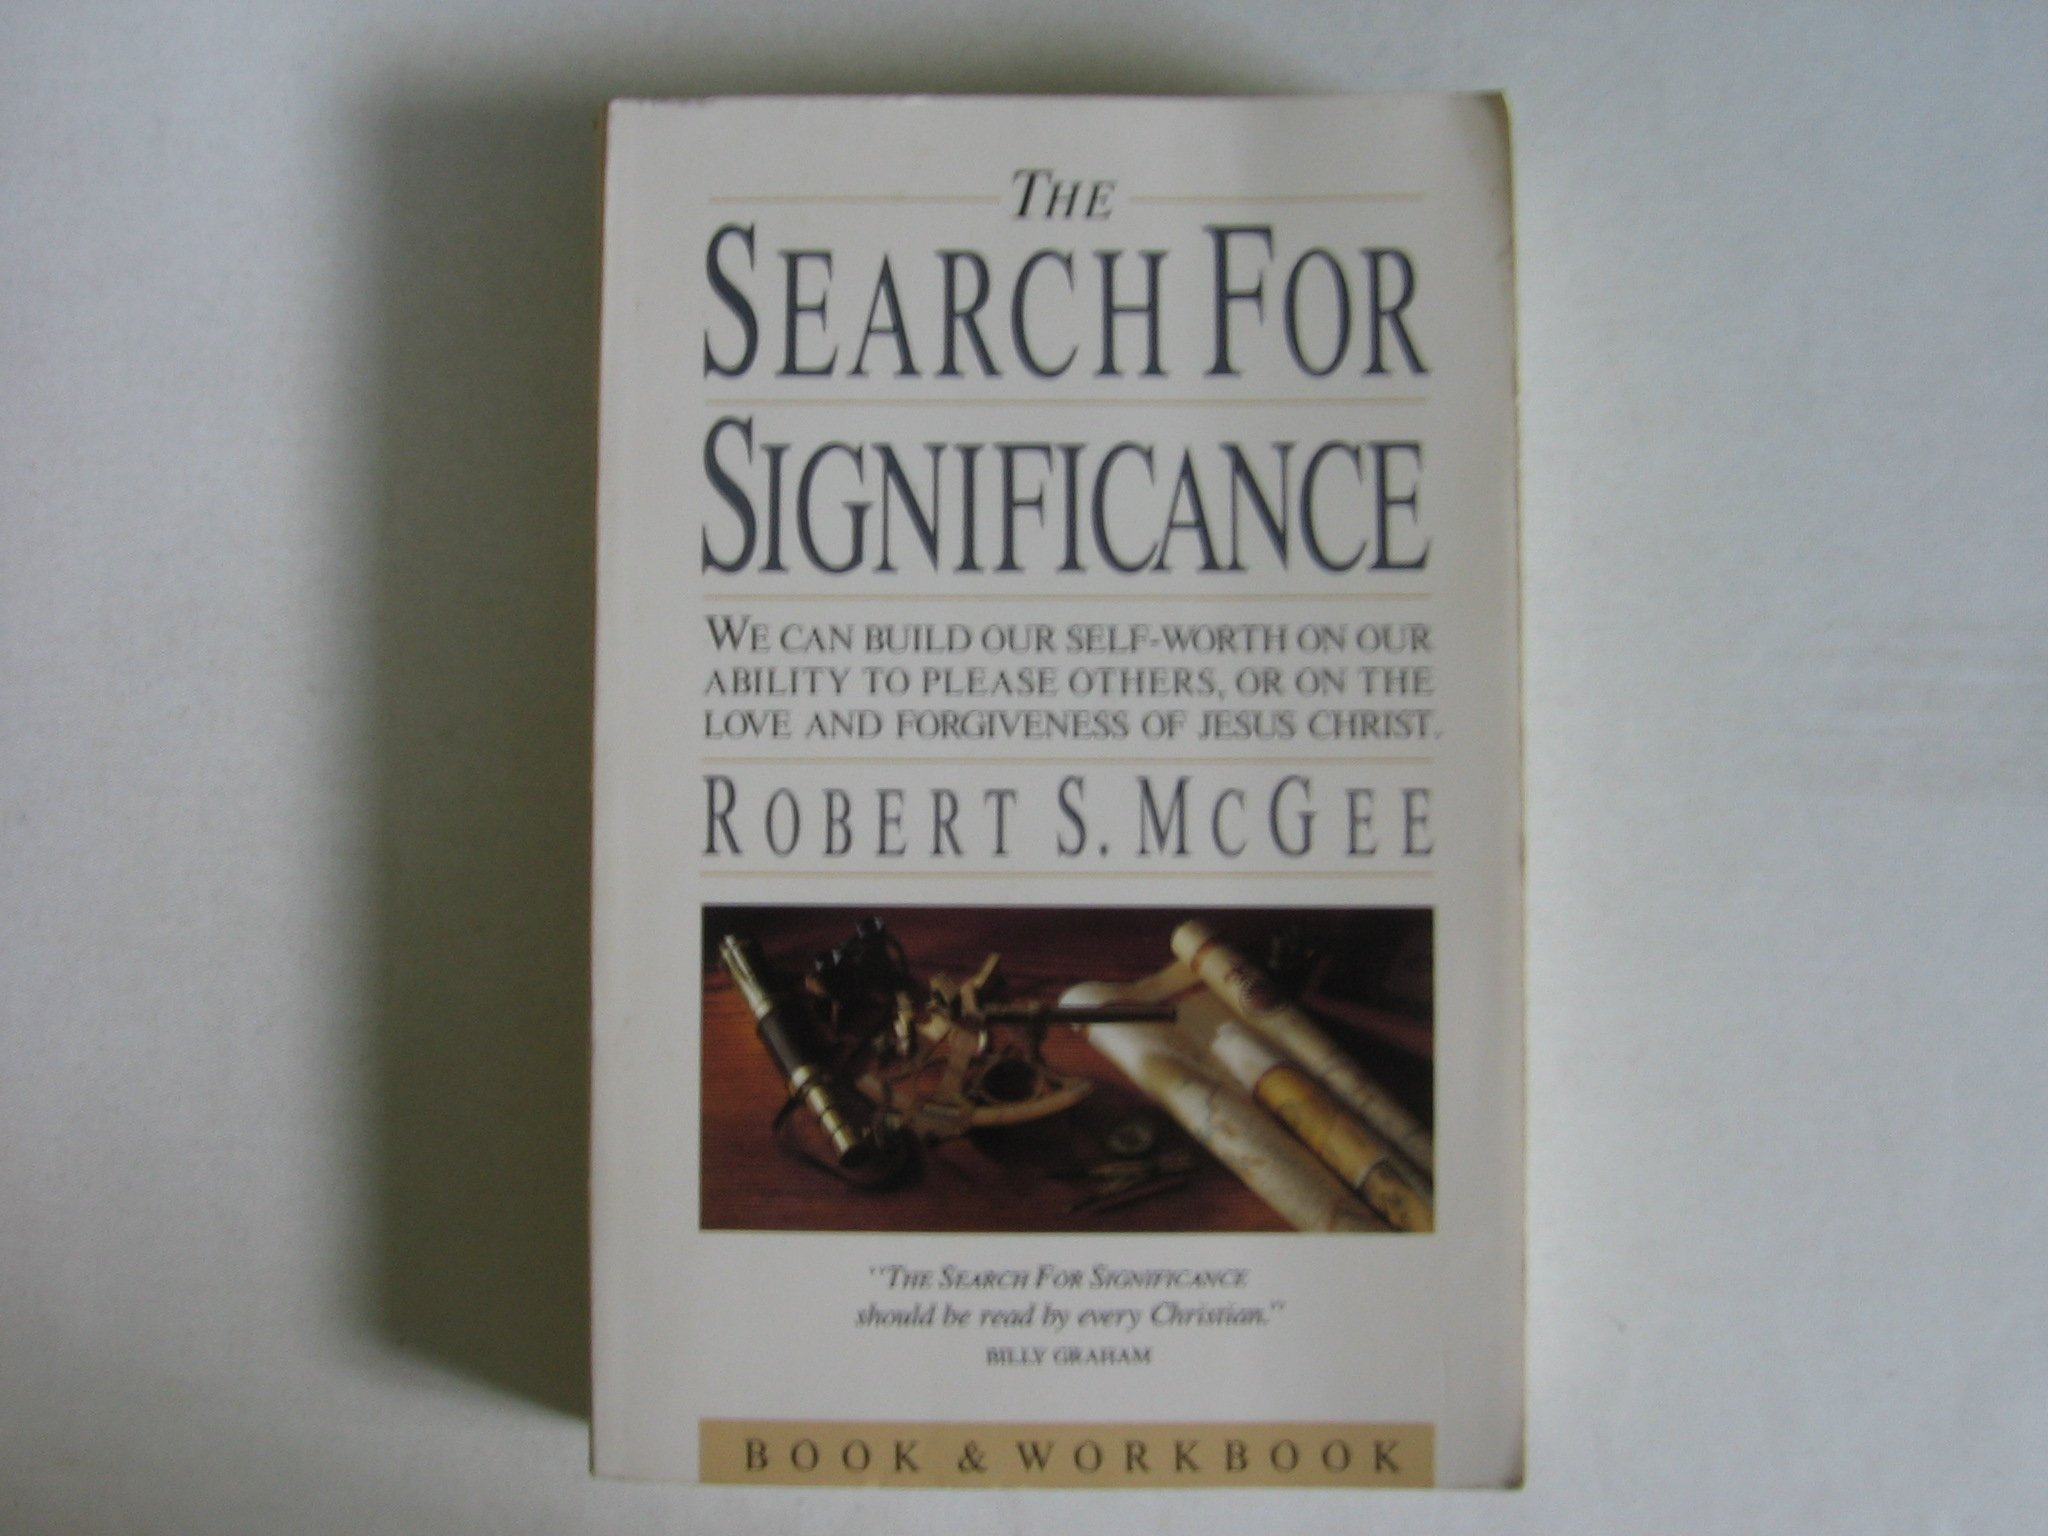 The Search For Significance, Book & Workbook: Robert S Mcgee: Amazon:  Books